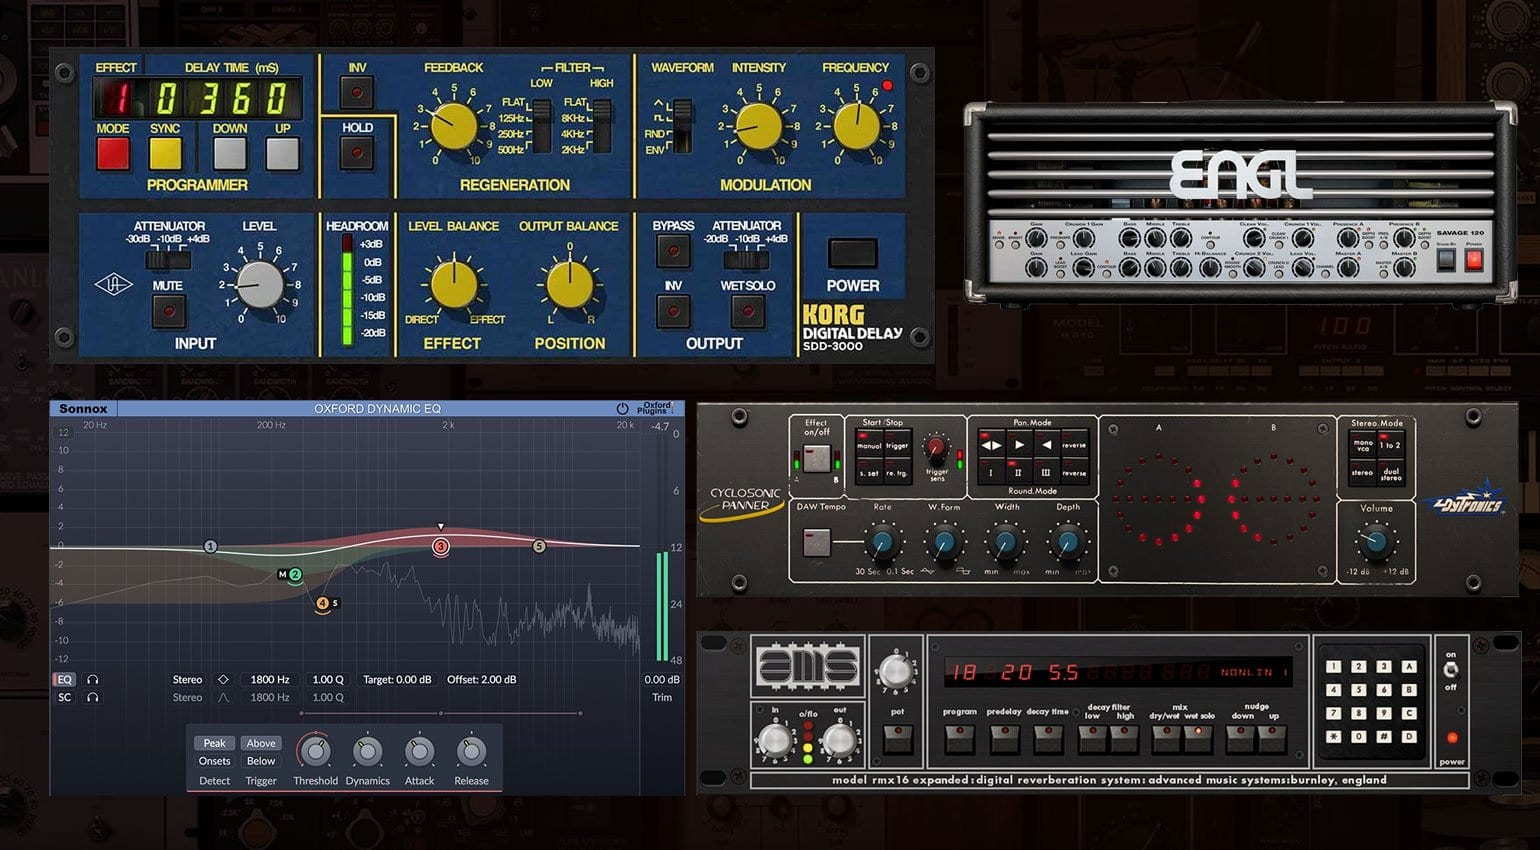 UAD version 9 3 introduces the Korg SDD-3000 delay plus 4